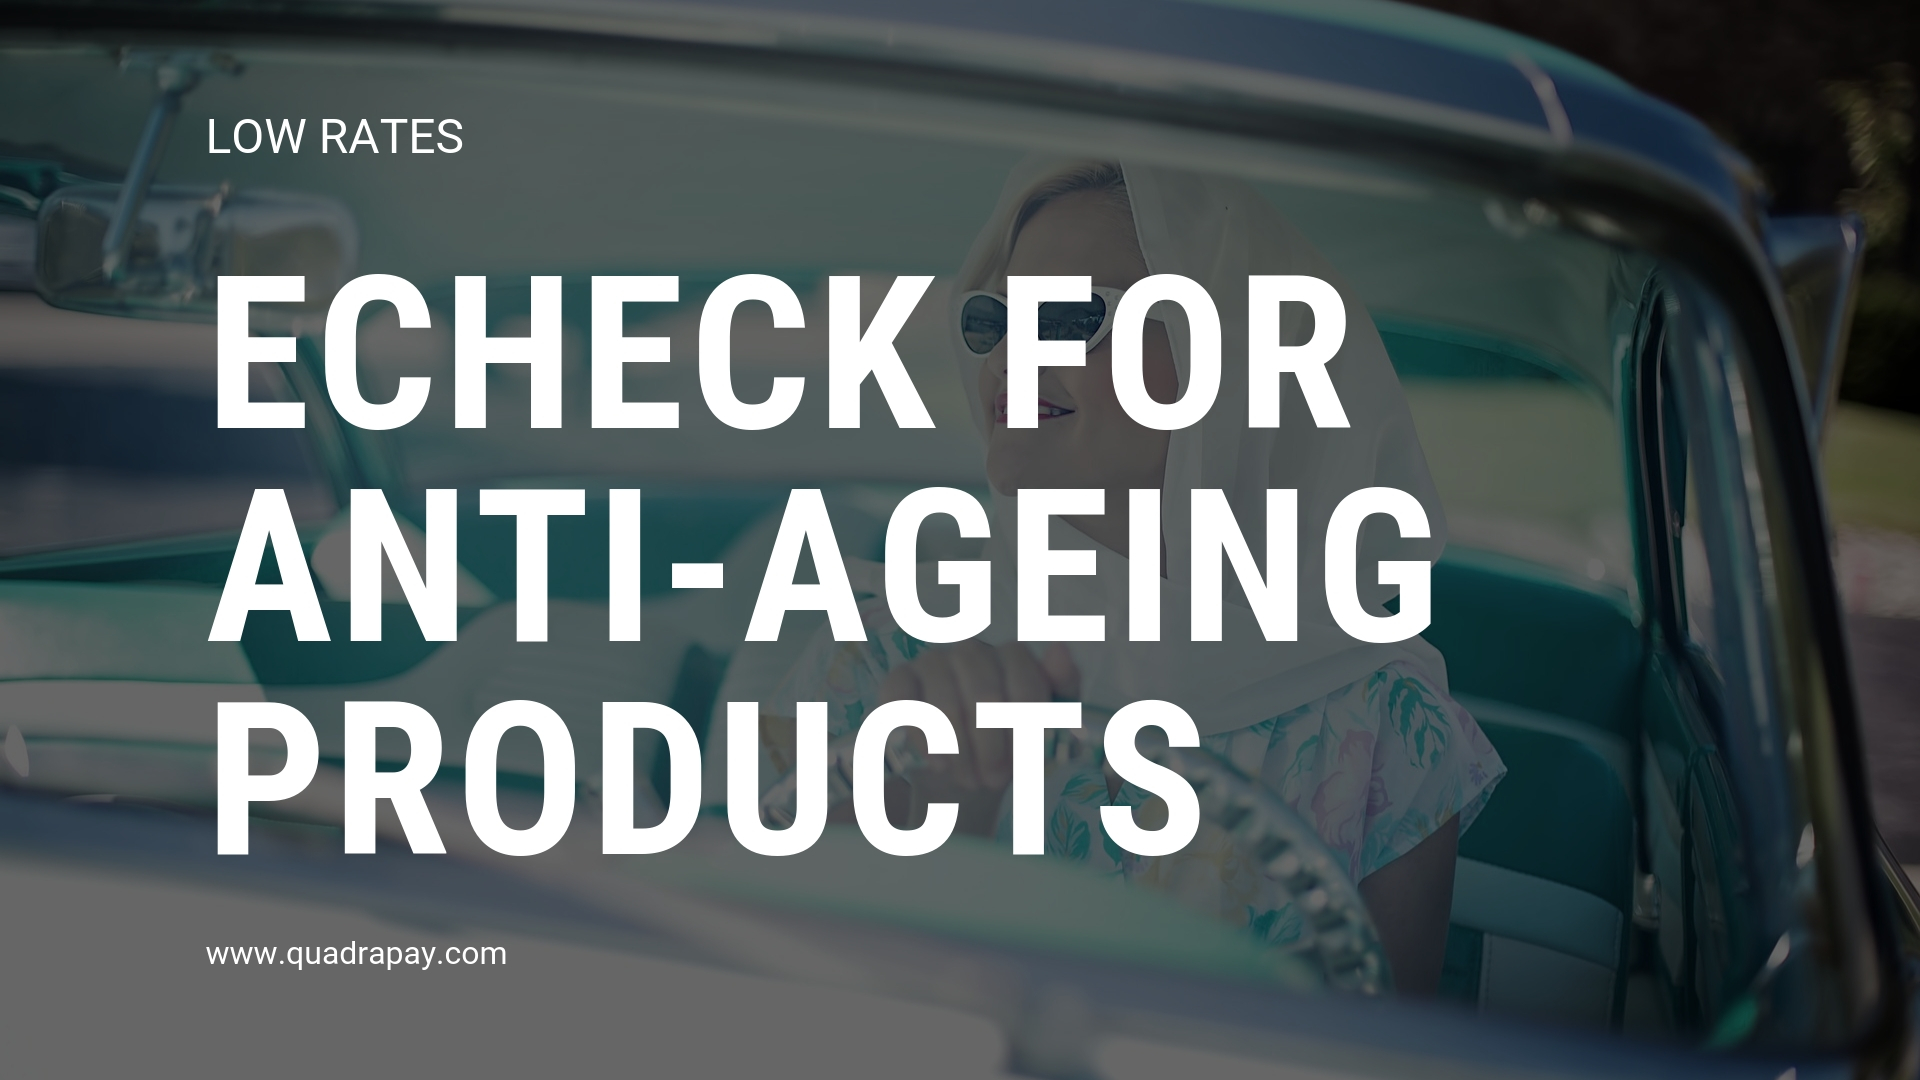 Echeck For Anti-Ageing Products